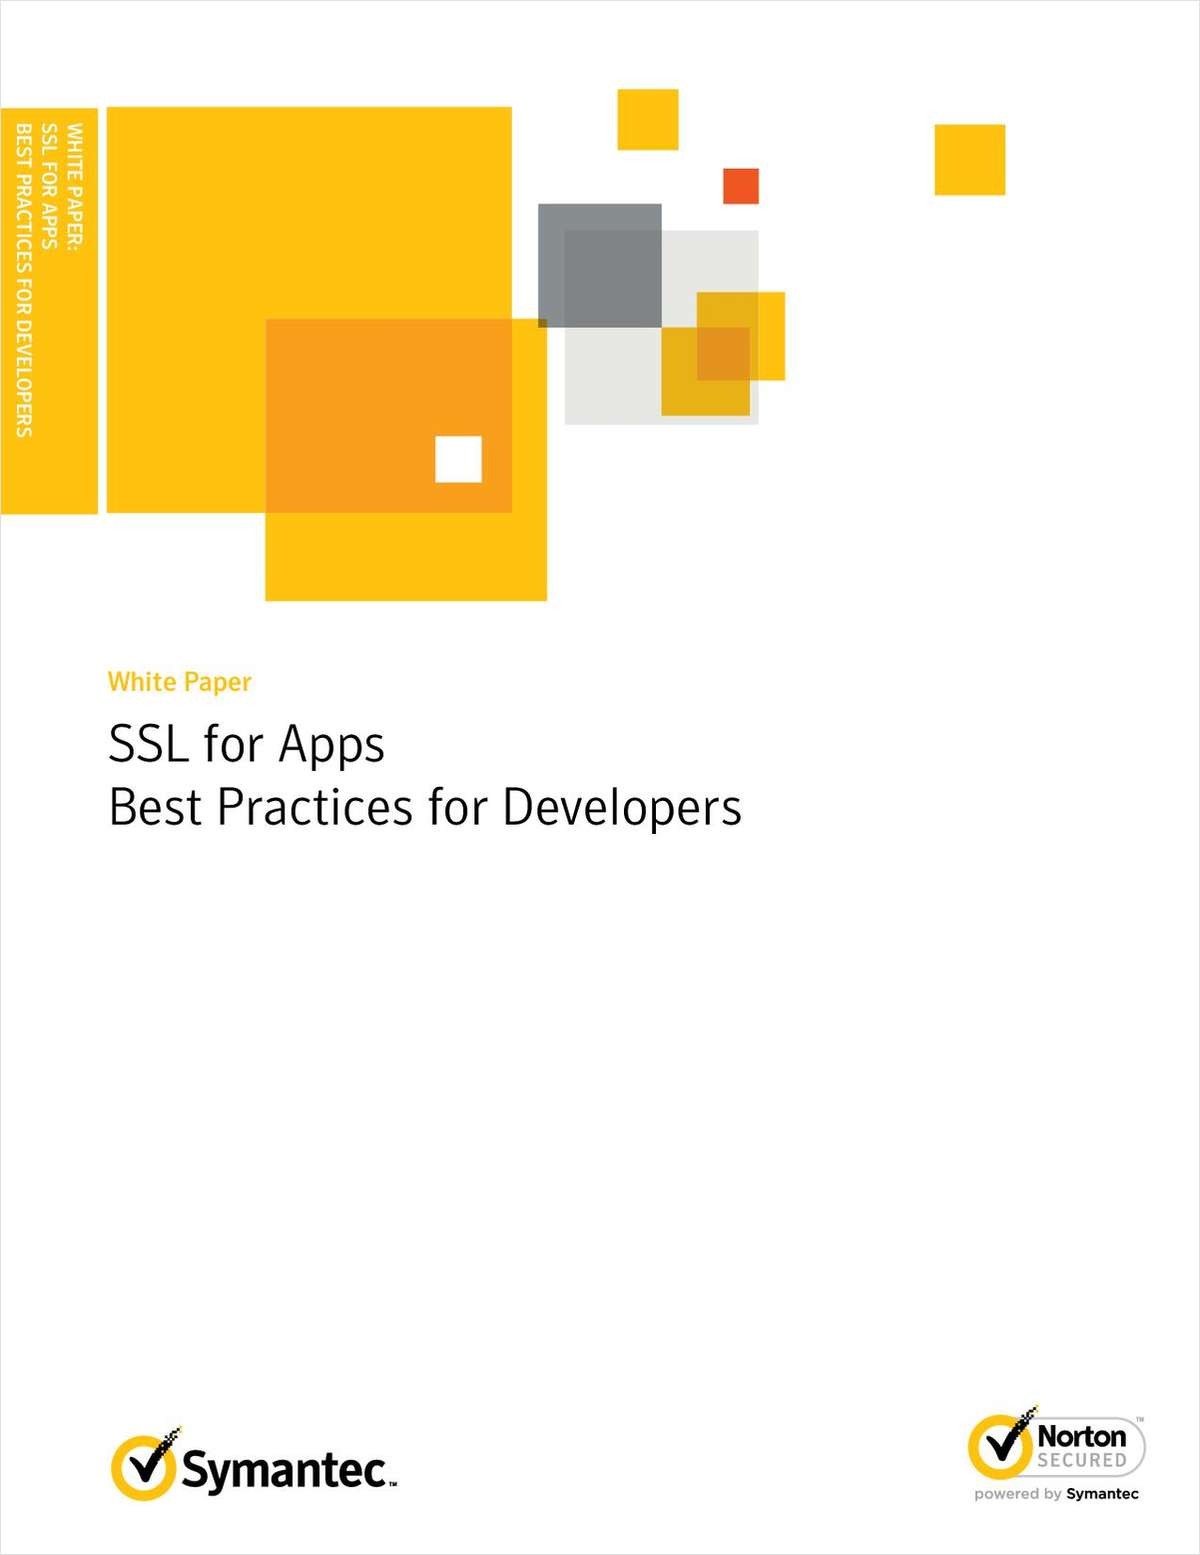 SSL for Apps Best Practices for Developers